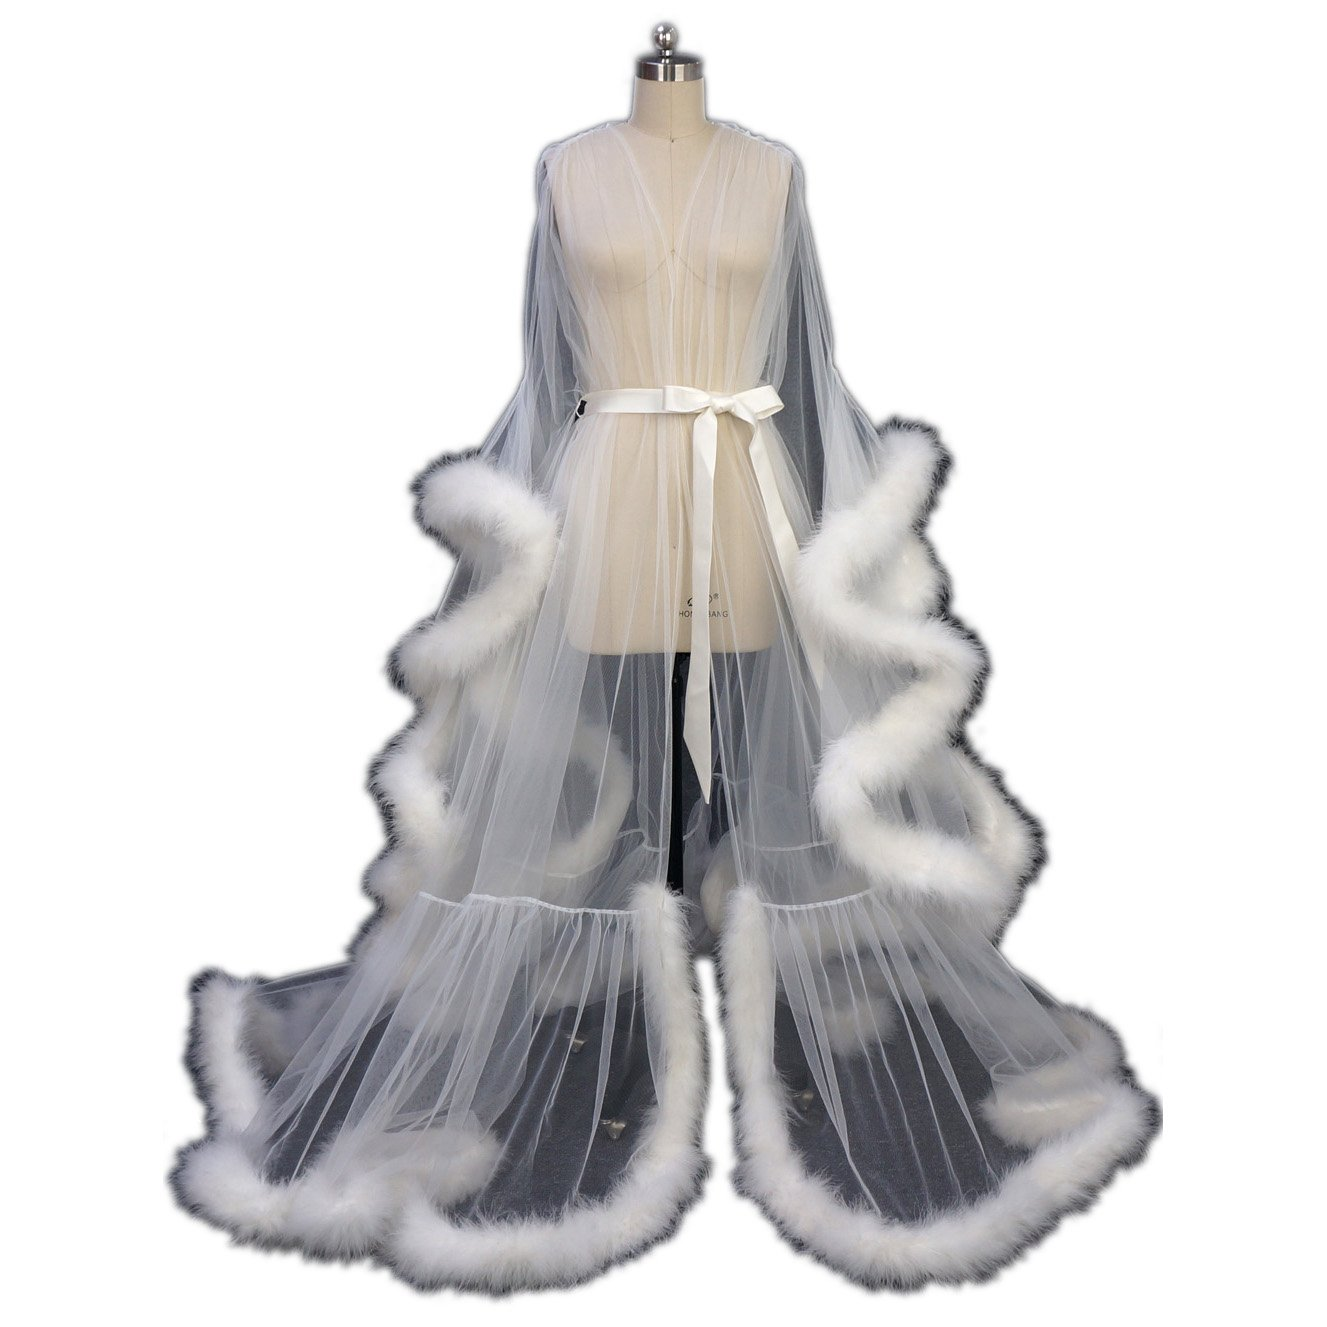 Feather Bridal Robe Tulle Illusion Long Wedding Scarf New Custom Made